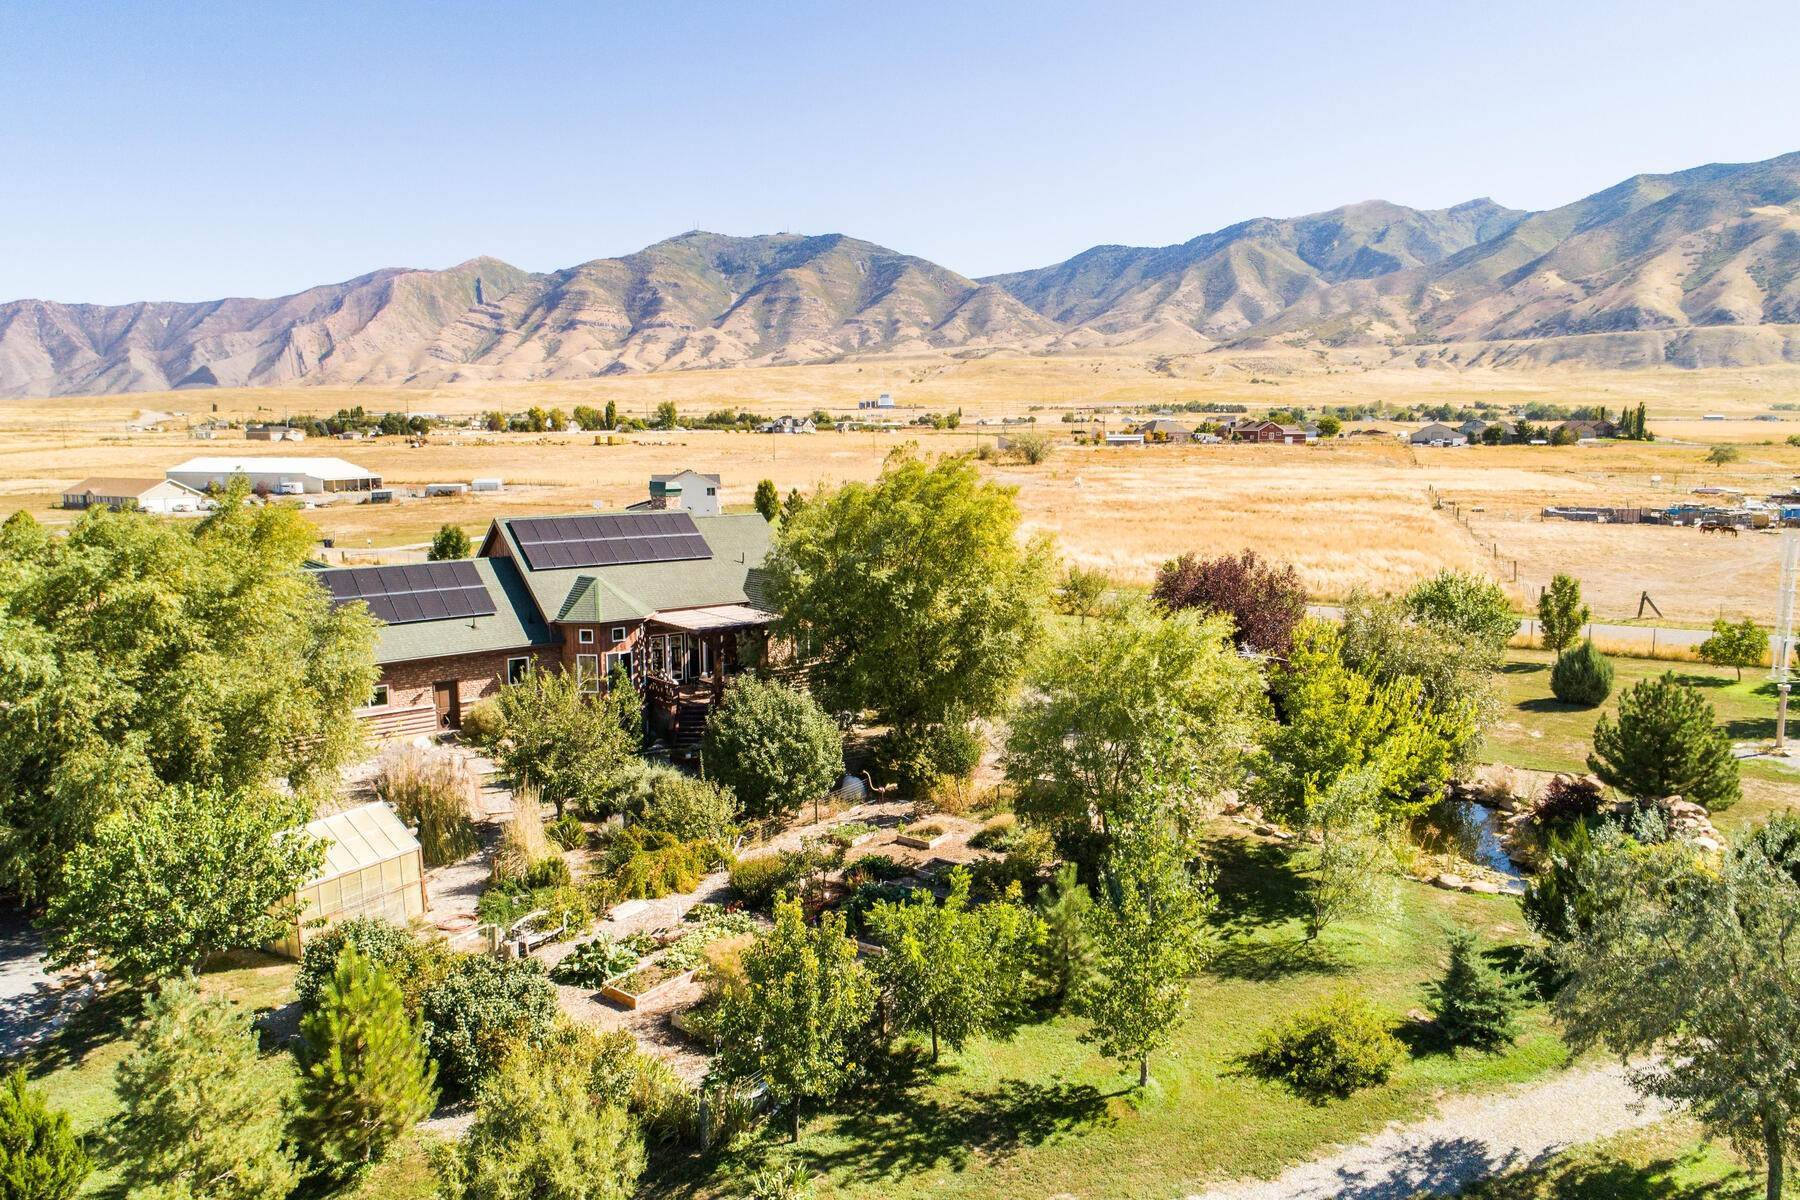 Single Family Homes for Sale at The Home Was Built to be Self-Sufficient 4949 Ashlee Way Erda, Utah 84074 United States